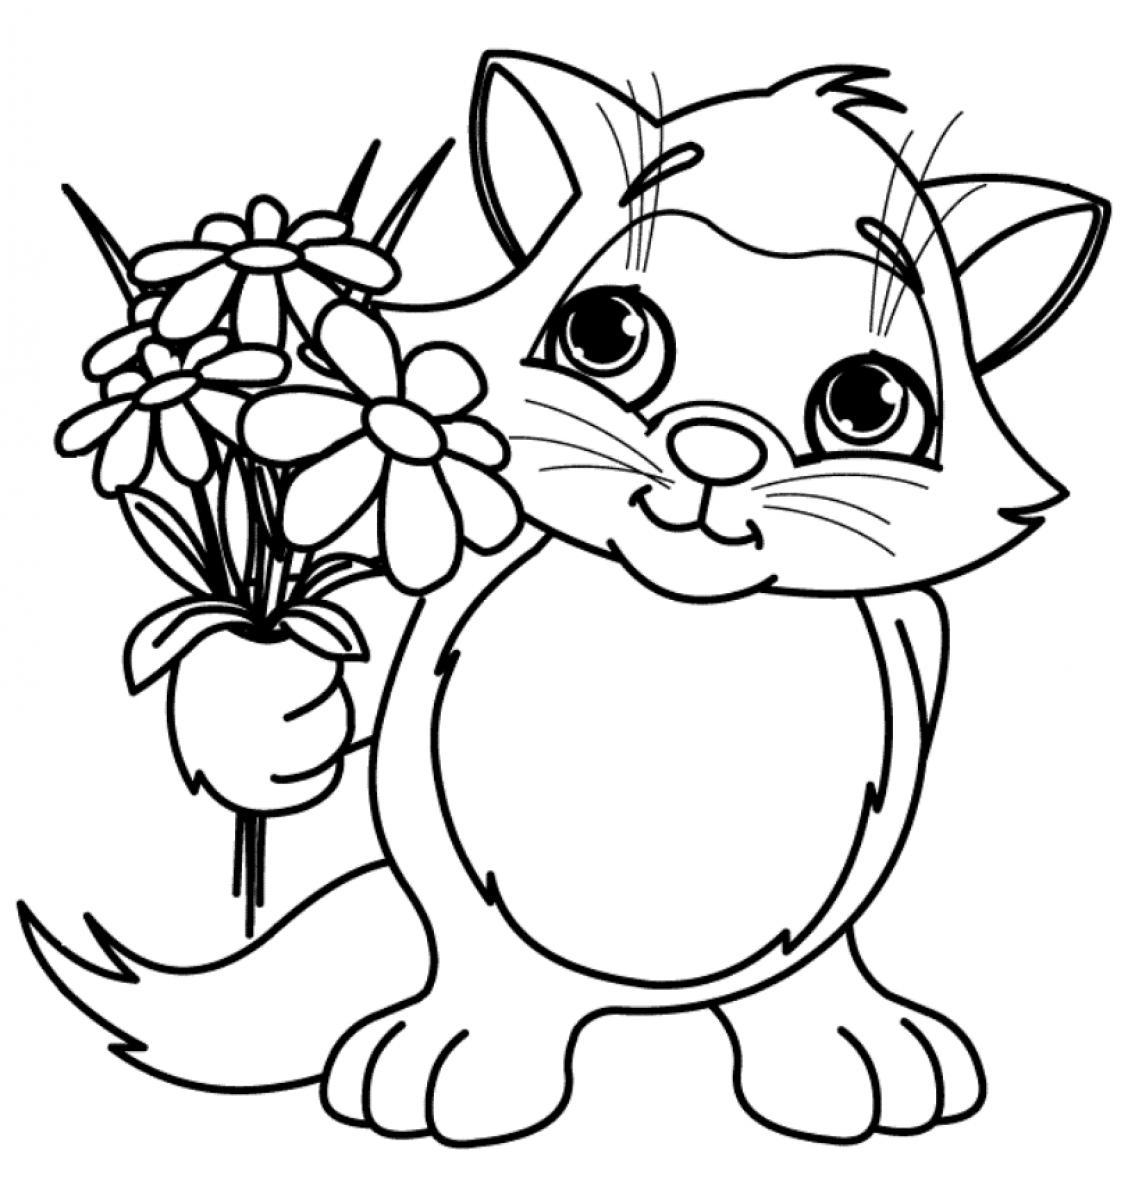 Flowers Coloring Pages Free Printable Flower Coloring Pages Free Download Best Flower Coloring Pages On